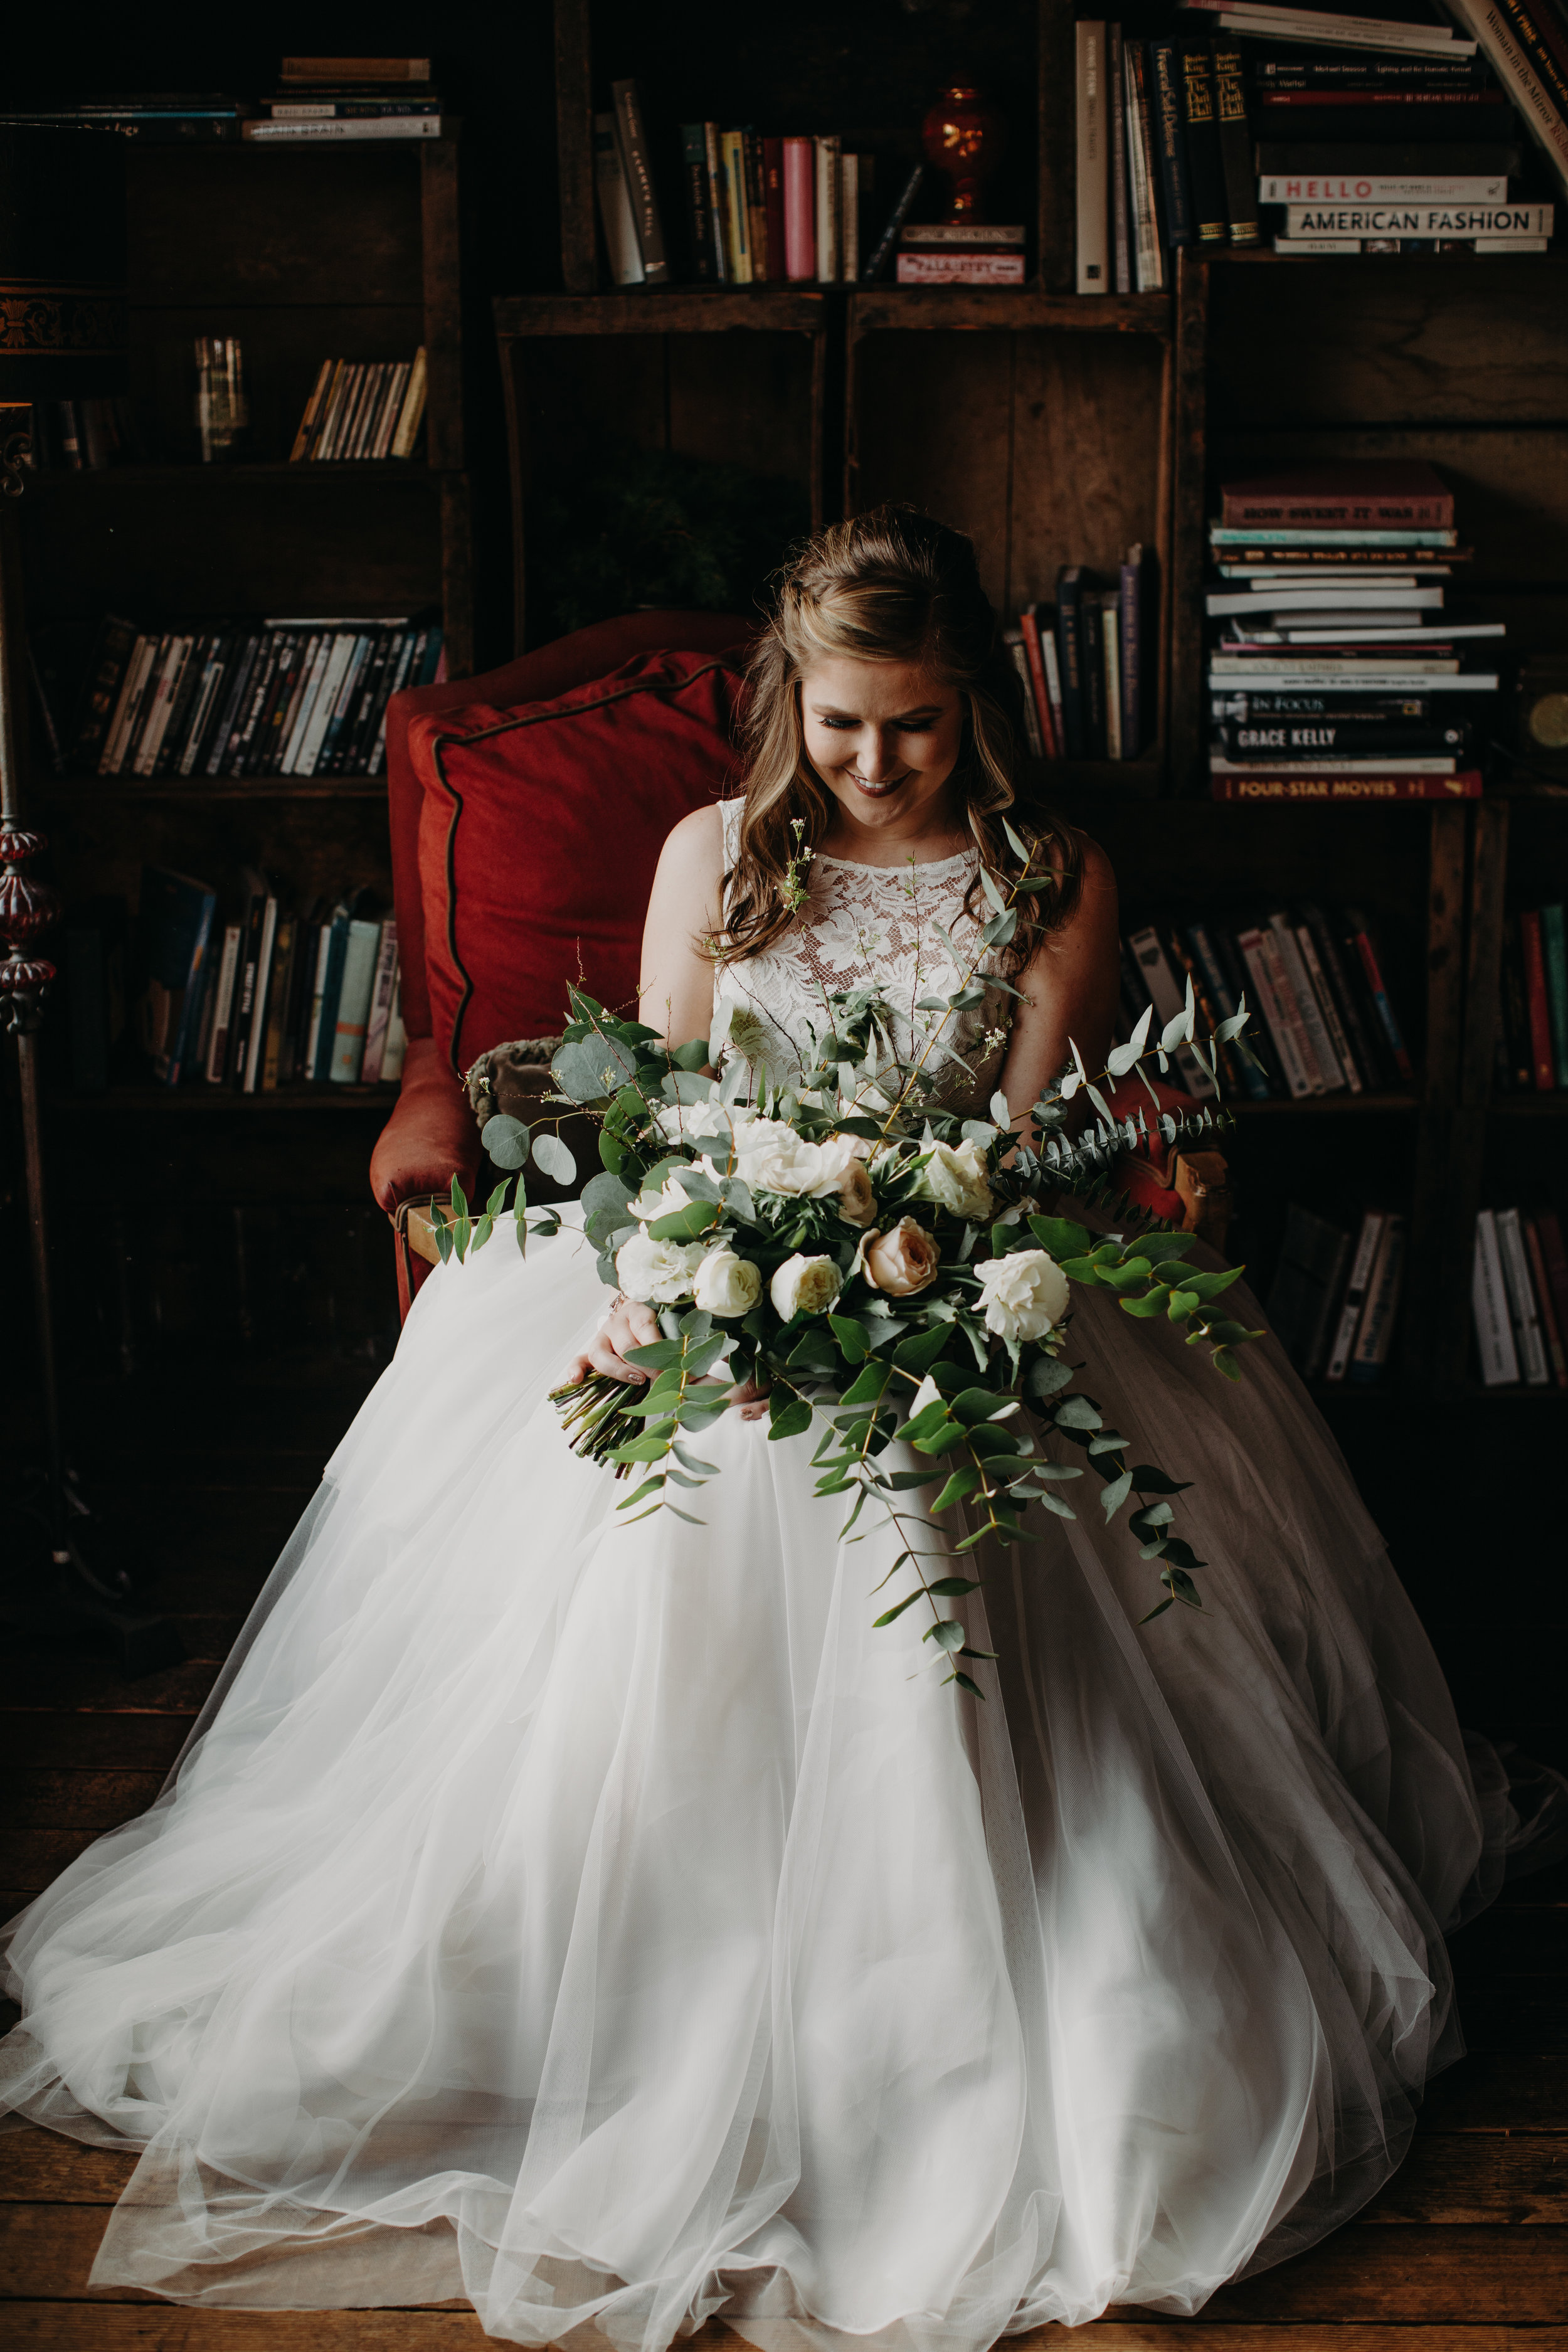 Smoky Hollow Studios Wedding Anne & Lewis Emily Magers Photography-138.jpg